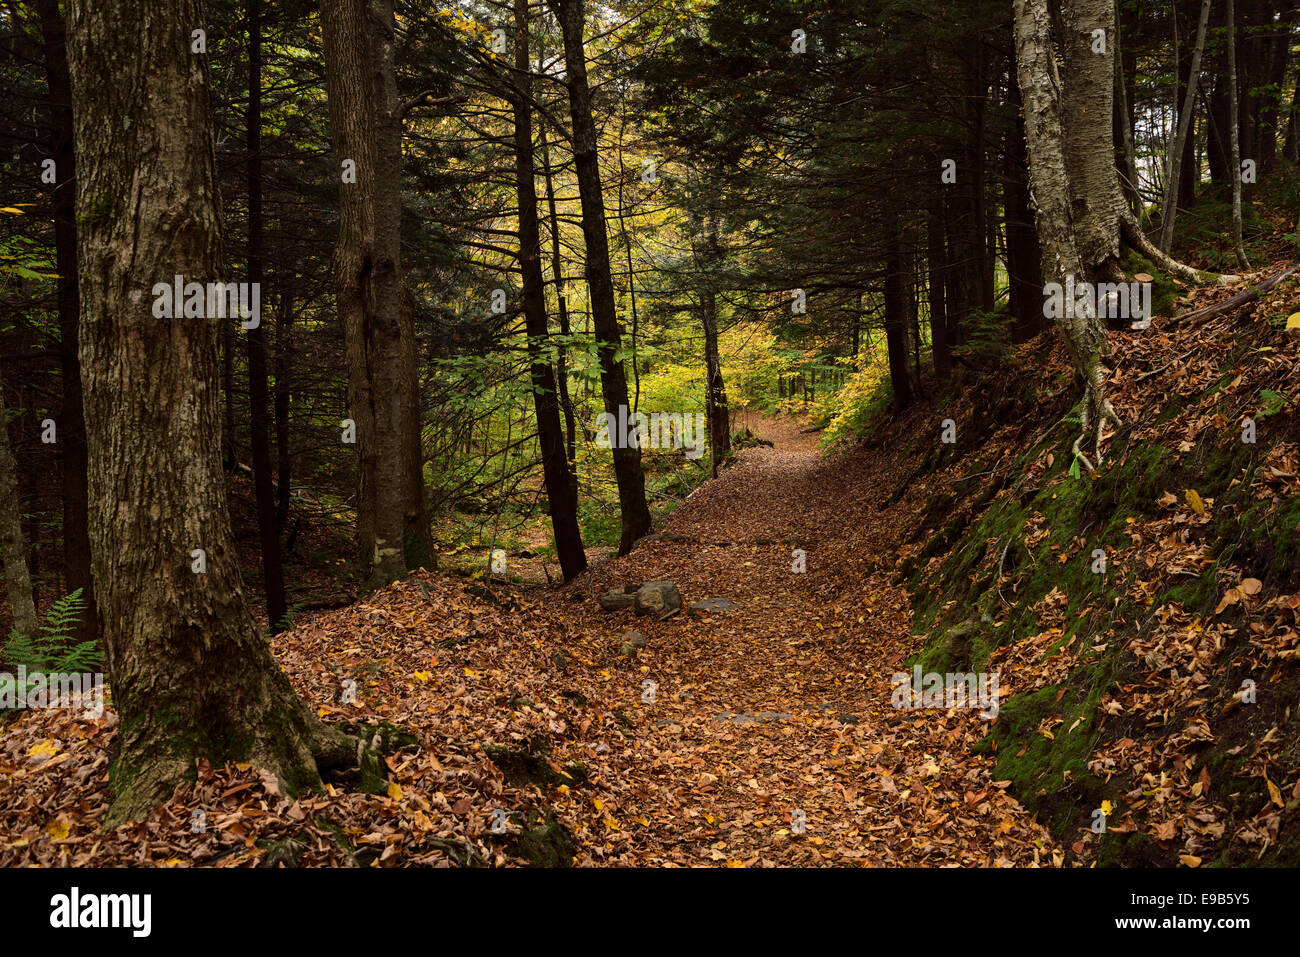 Forest path to Bingham Falls Stowe Vermont with fallen leaves Stock Photo